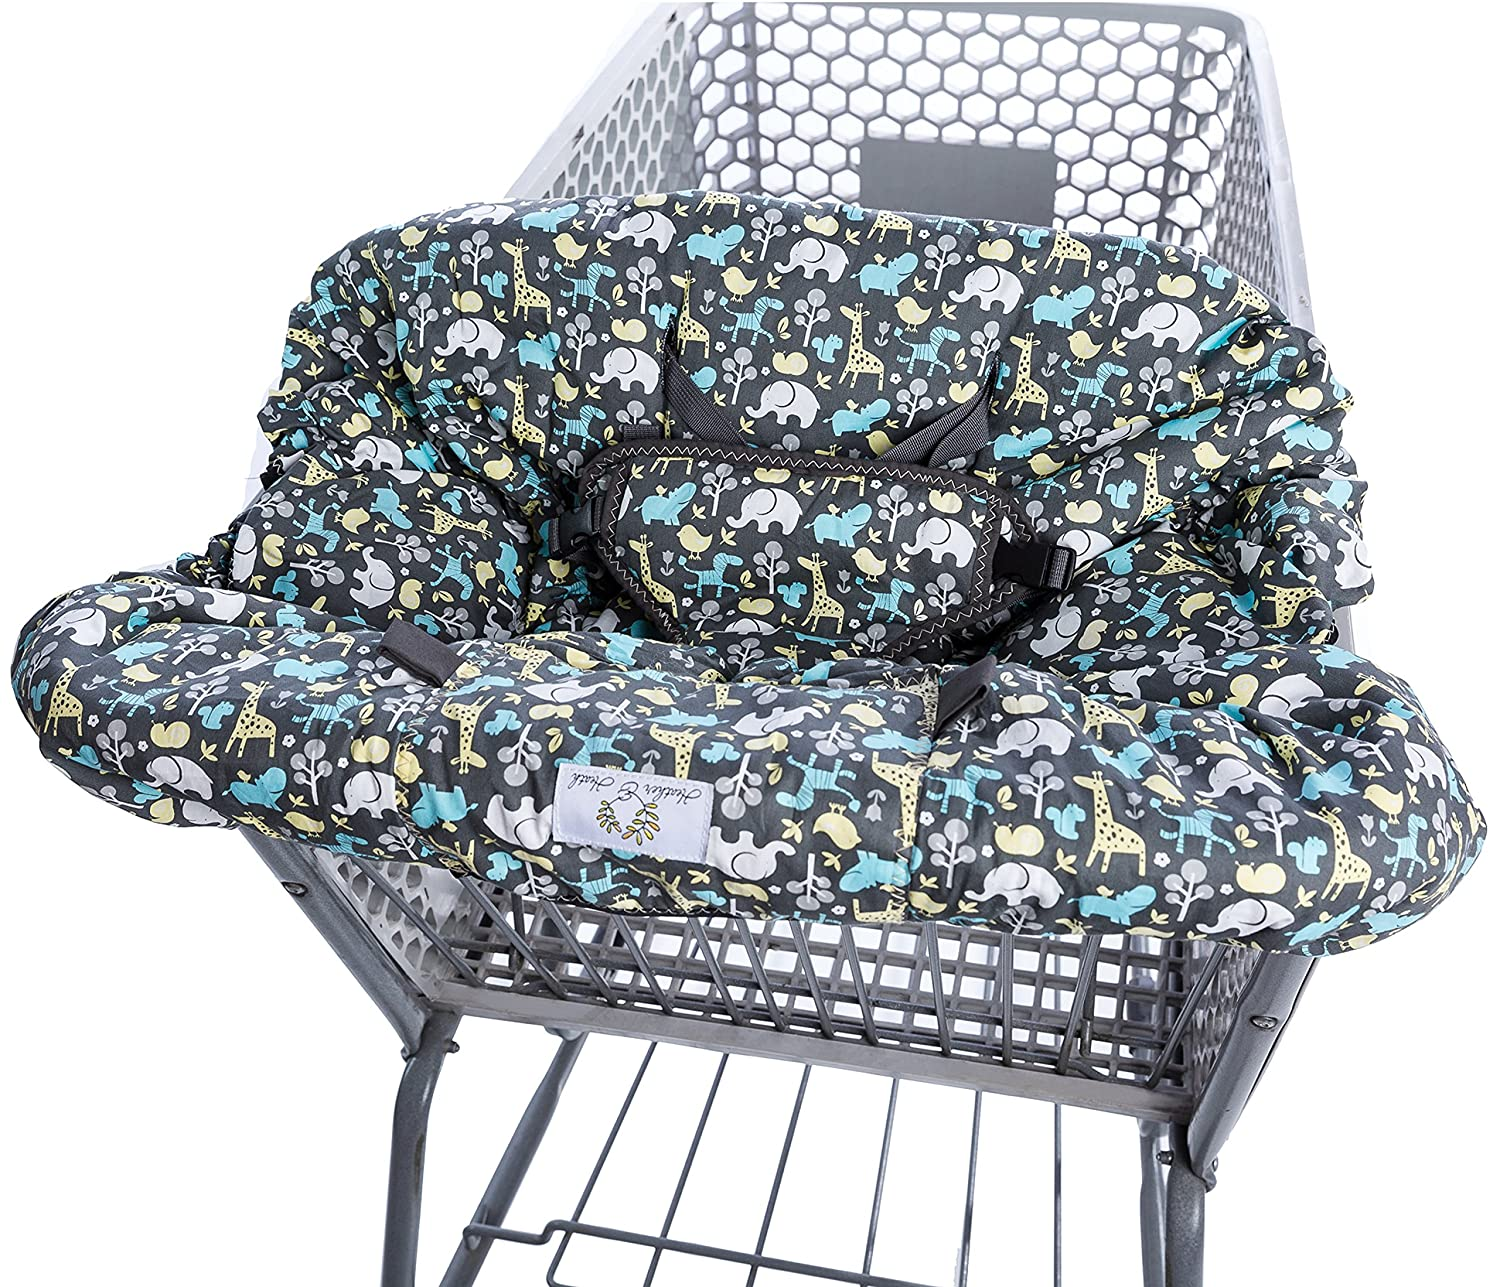 Amazon 2 in 1 Shopping Cart Cover and High Chair Cover